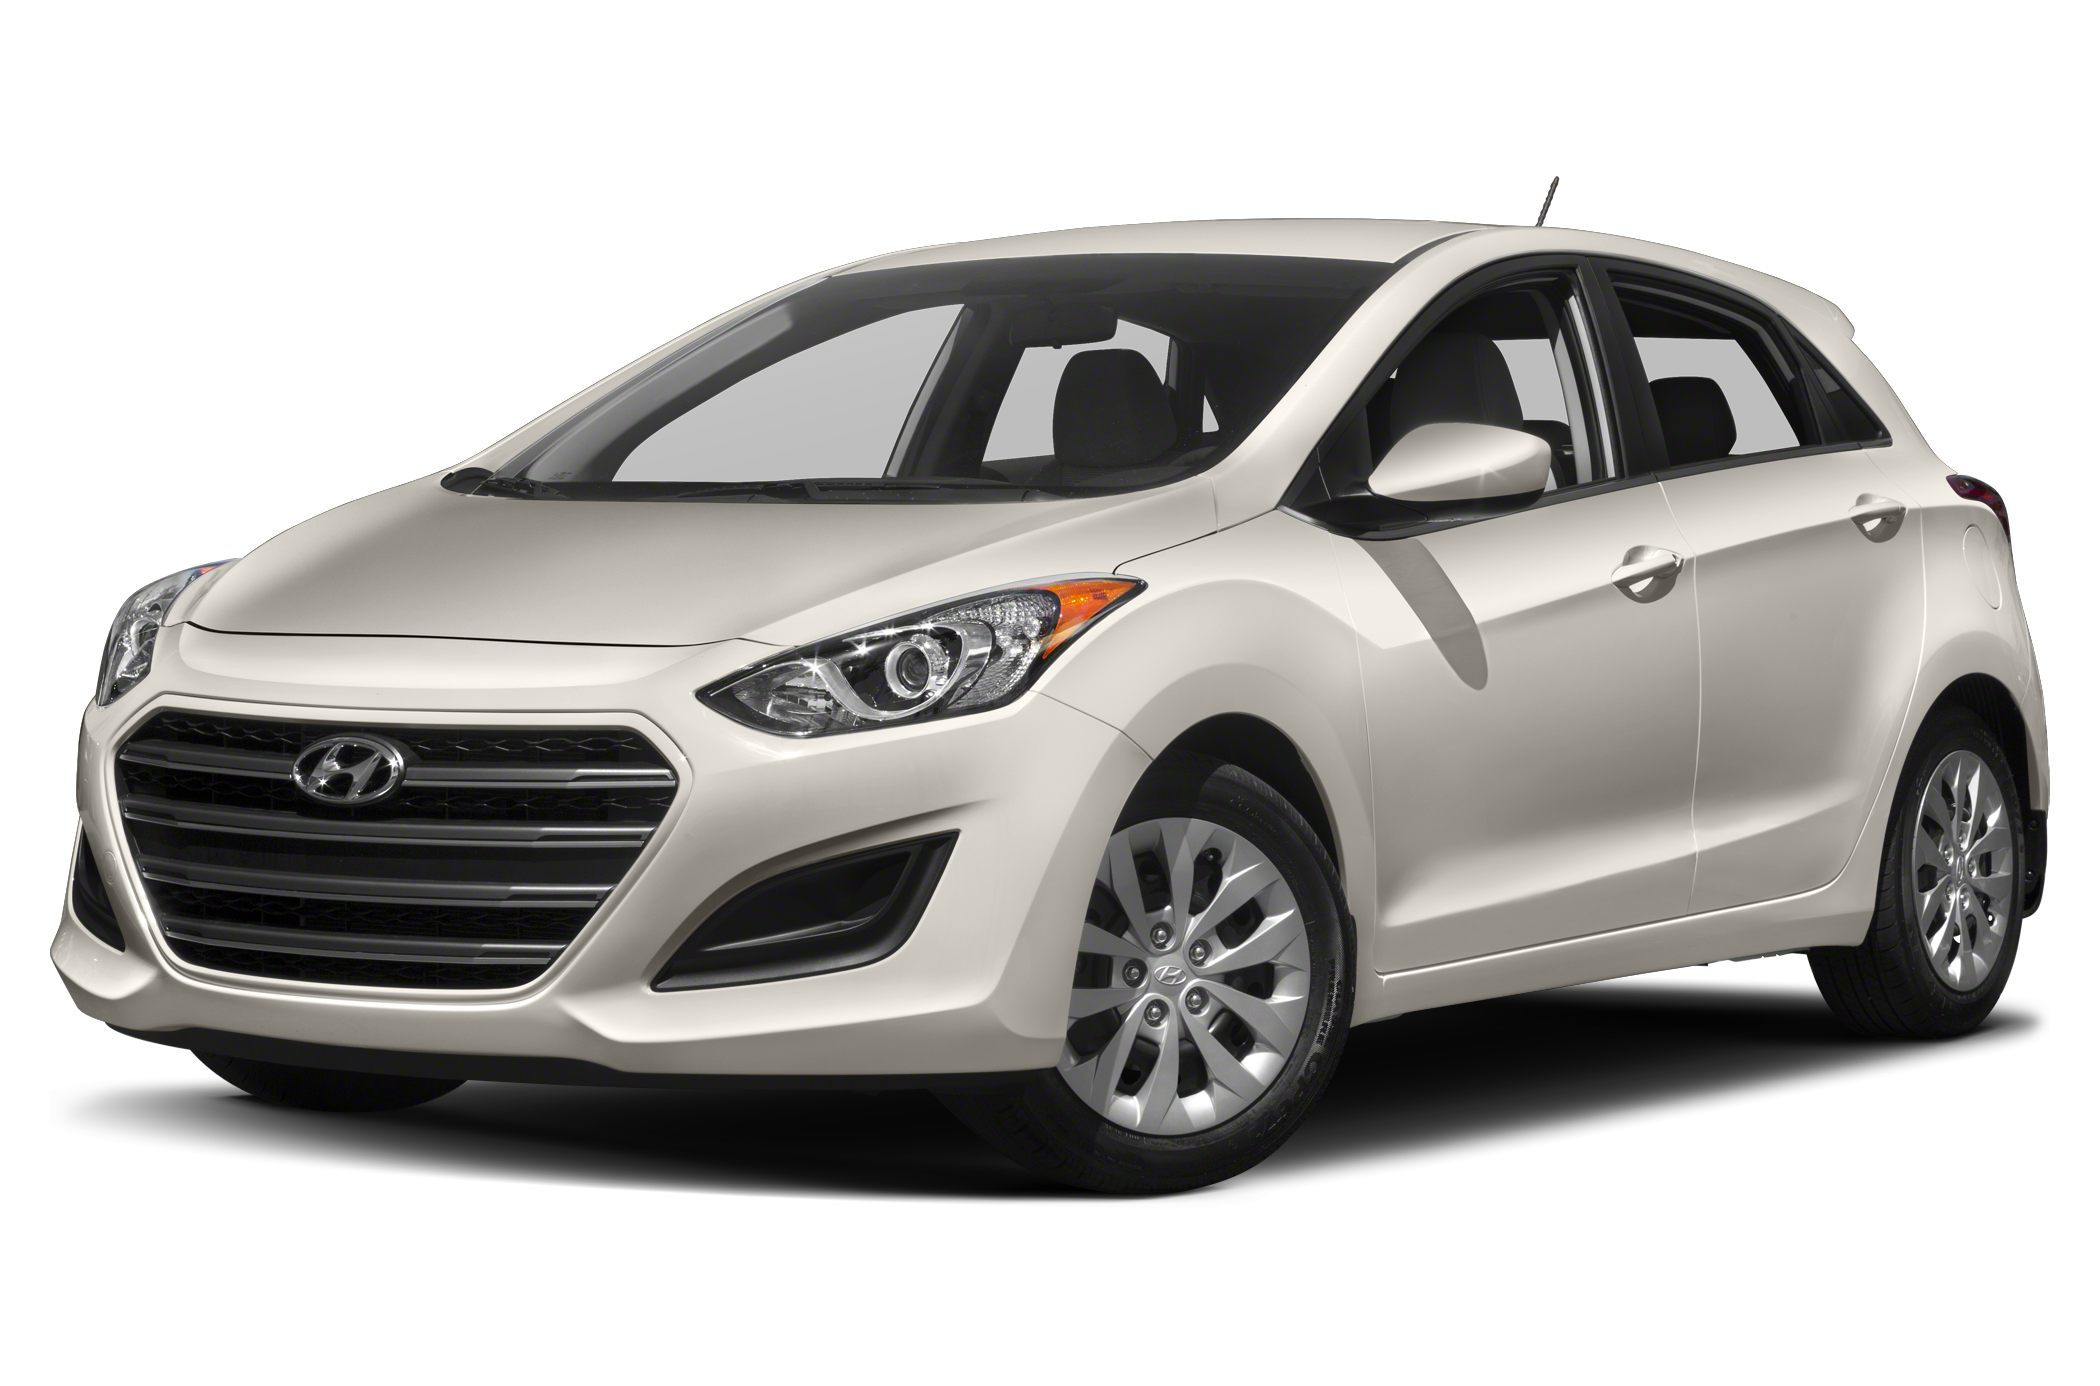 2017 Hyundai Elantra Gt Photos